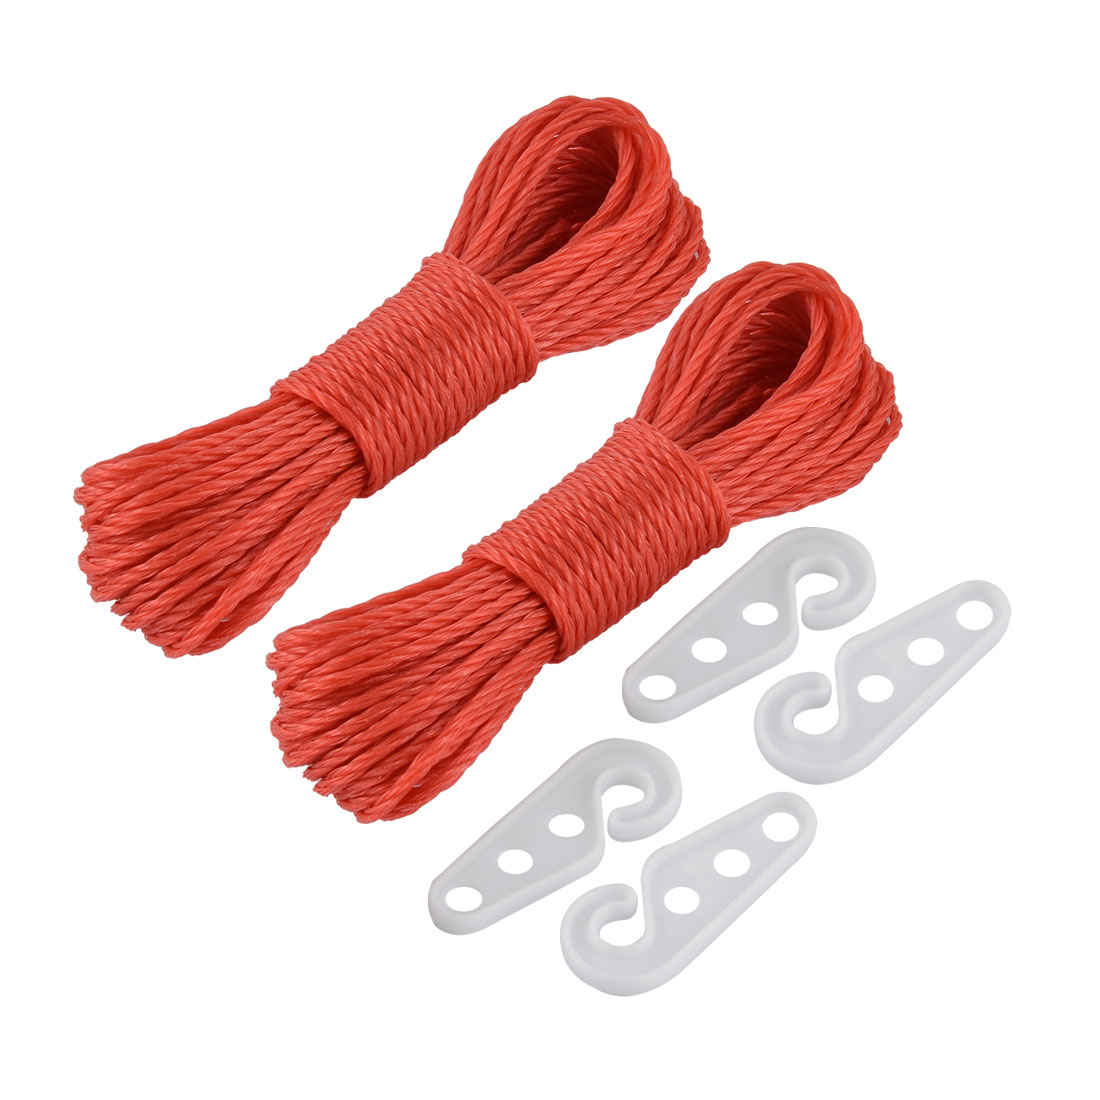 Home Laundry Outdoor Nylon Hanging Clothes Rope Line Clothesline Red 10m Length 2pcs